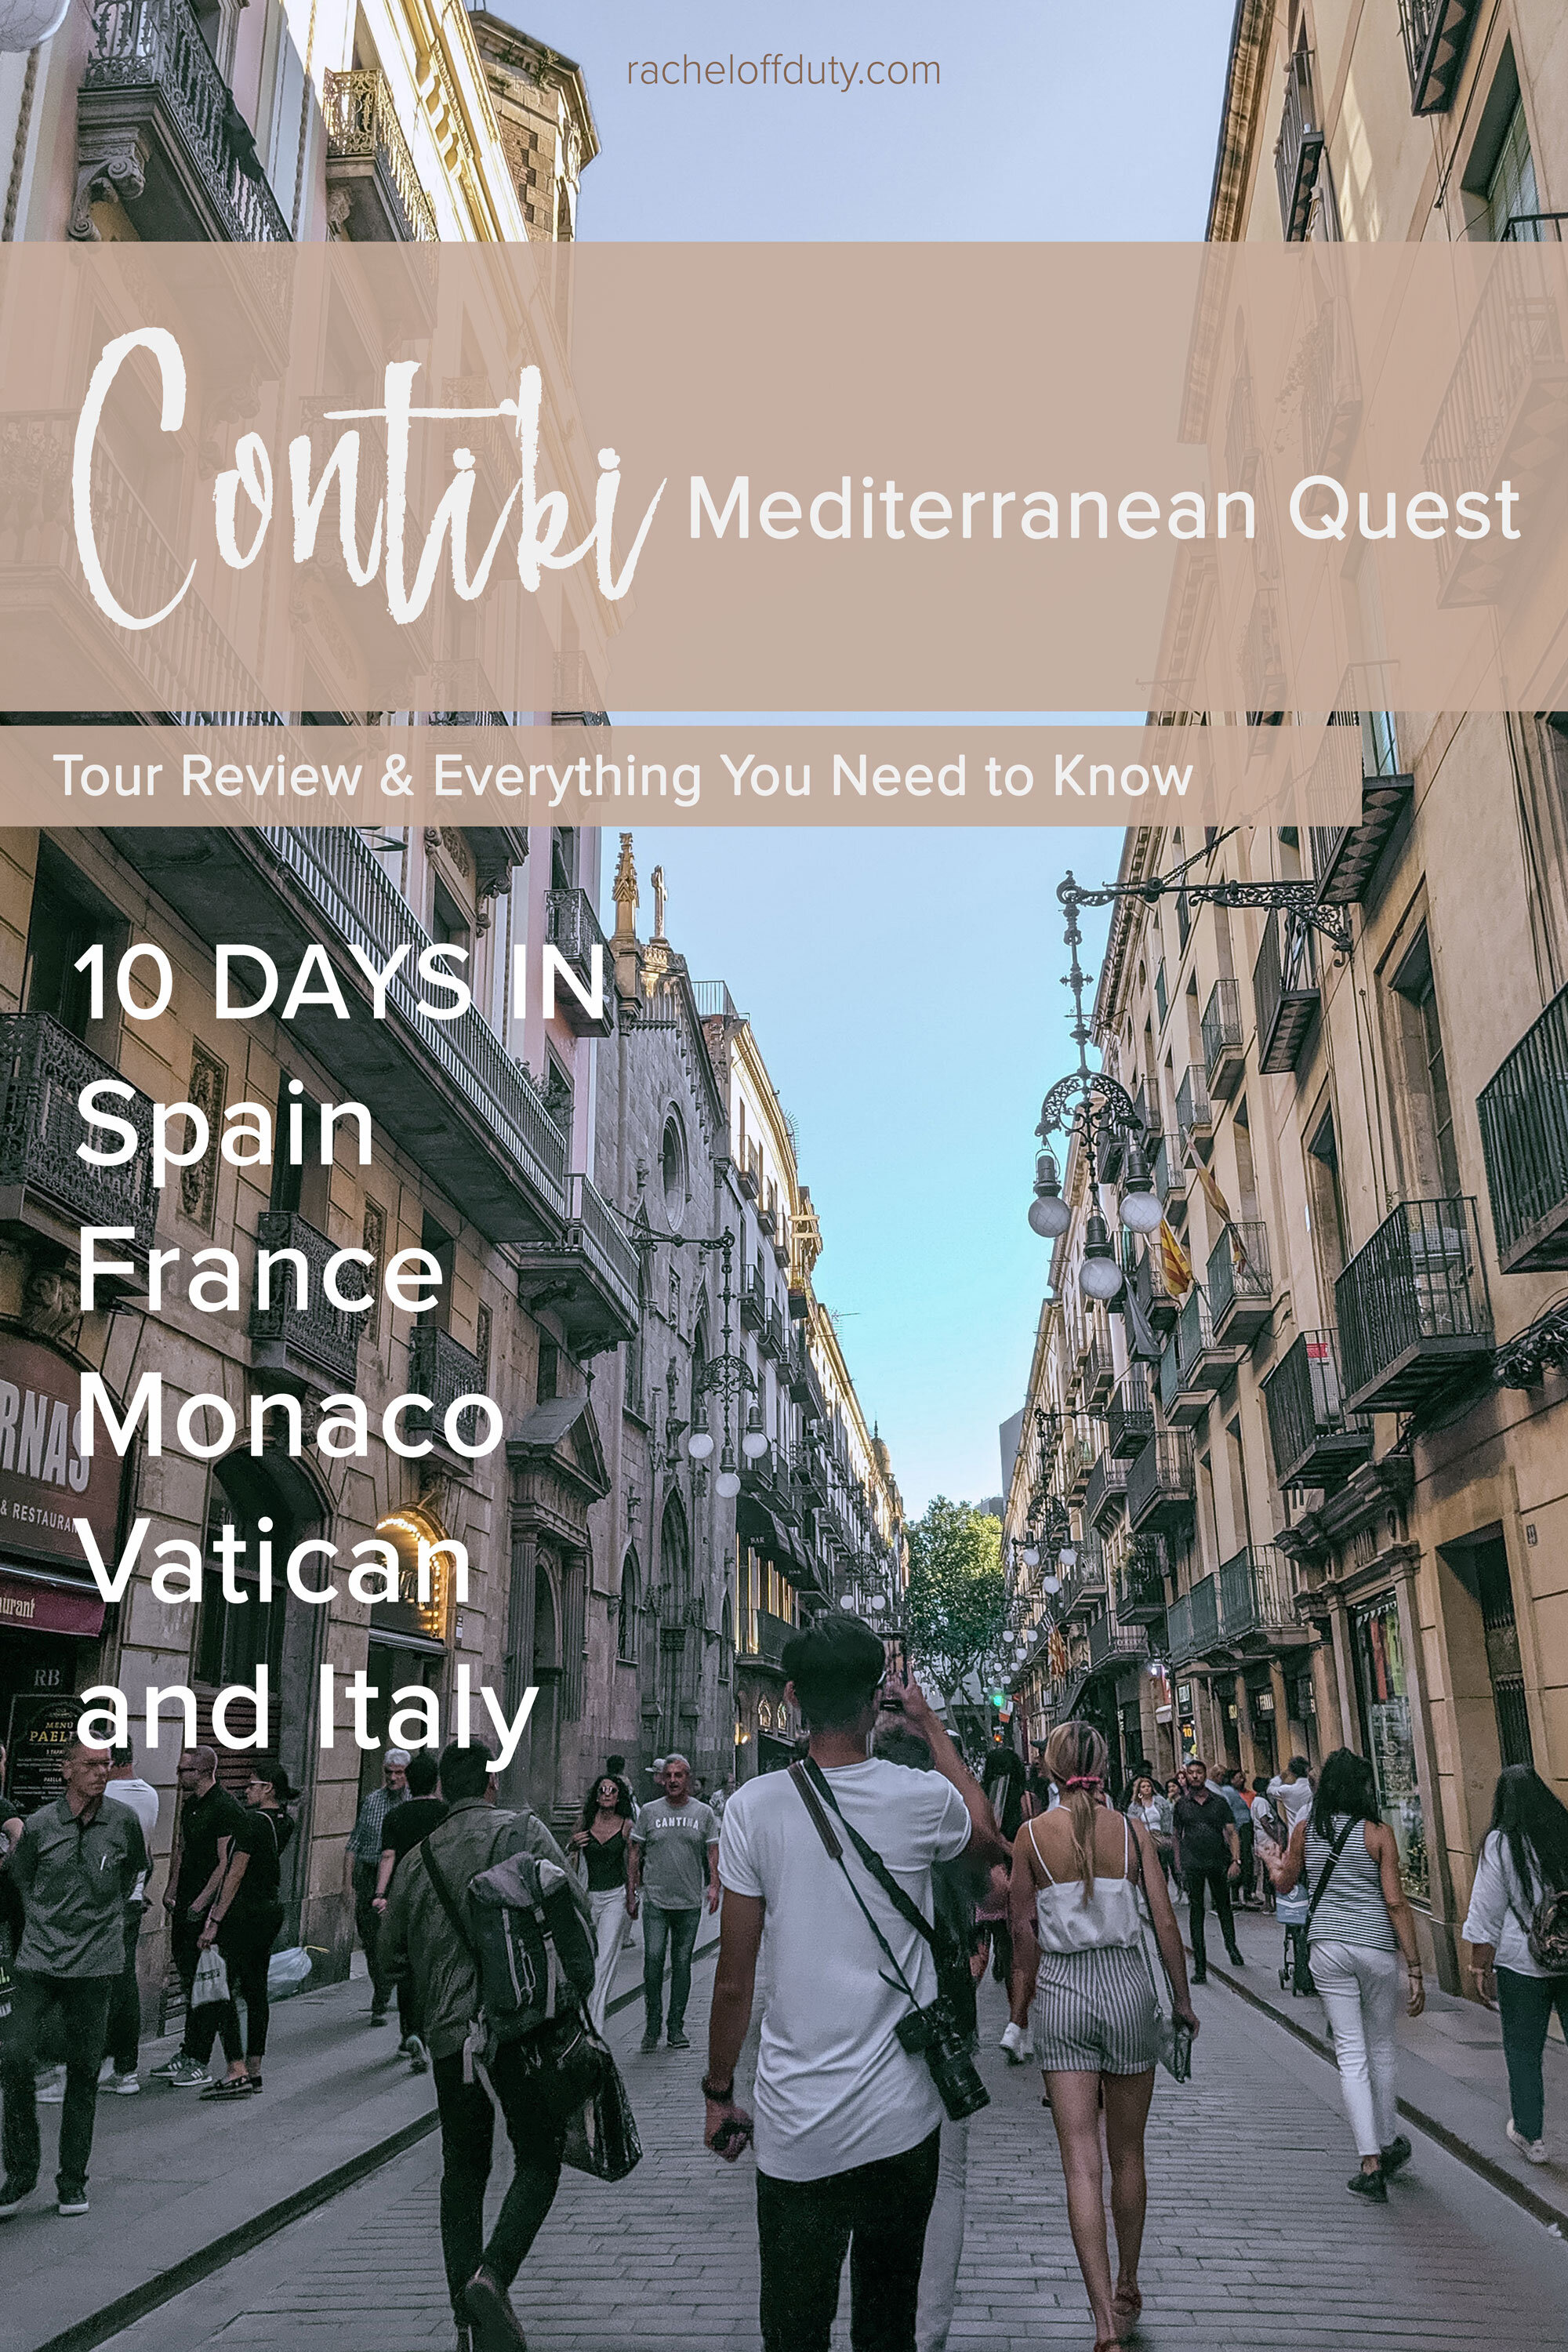 Rachel Off Duty: Contiki Mediterranean Quest Review: 10 Jam-Packed Days in Europe